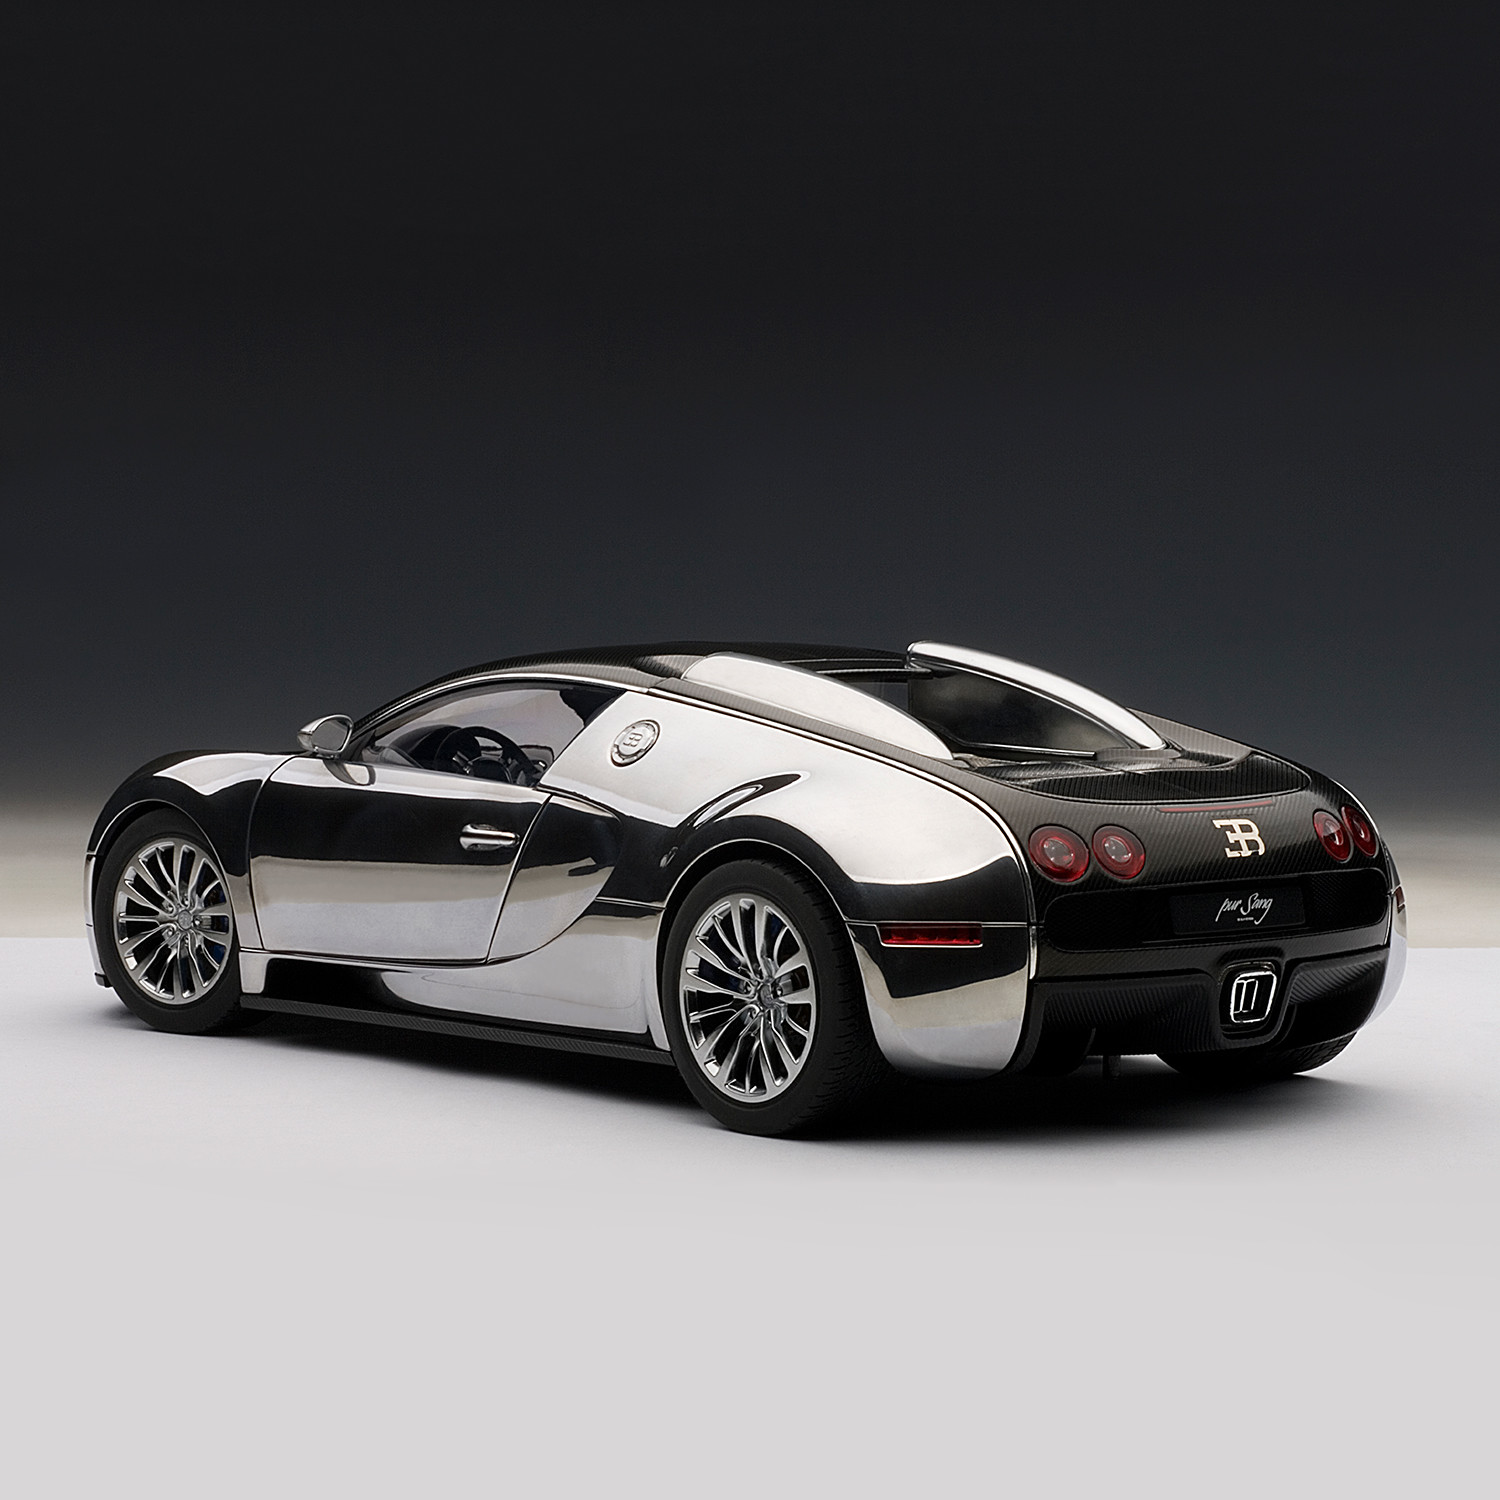 bugatti eb veyron 16 4 pur sang auto art touch of modern. Black Bedroom Furniture Sets. Home Design Ideas